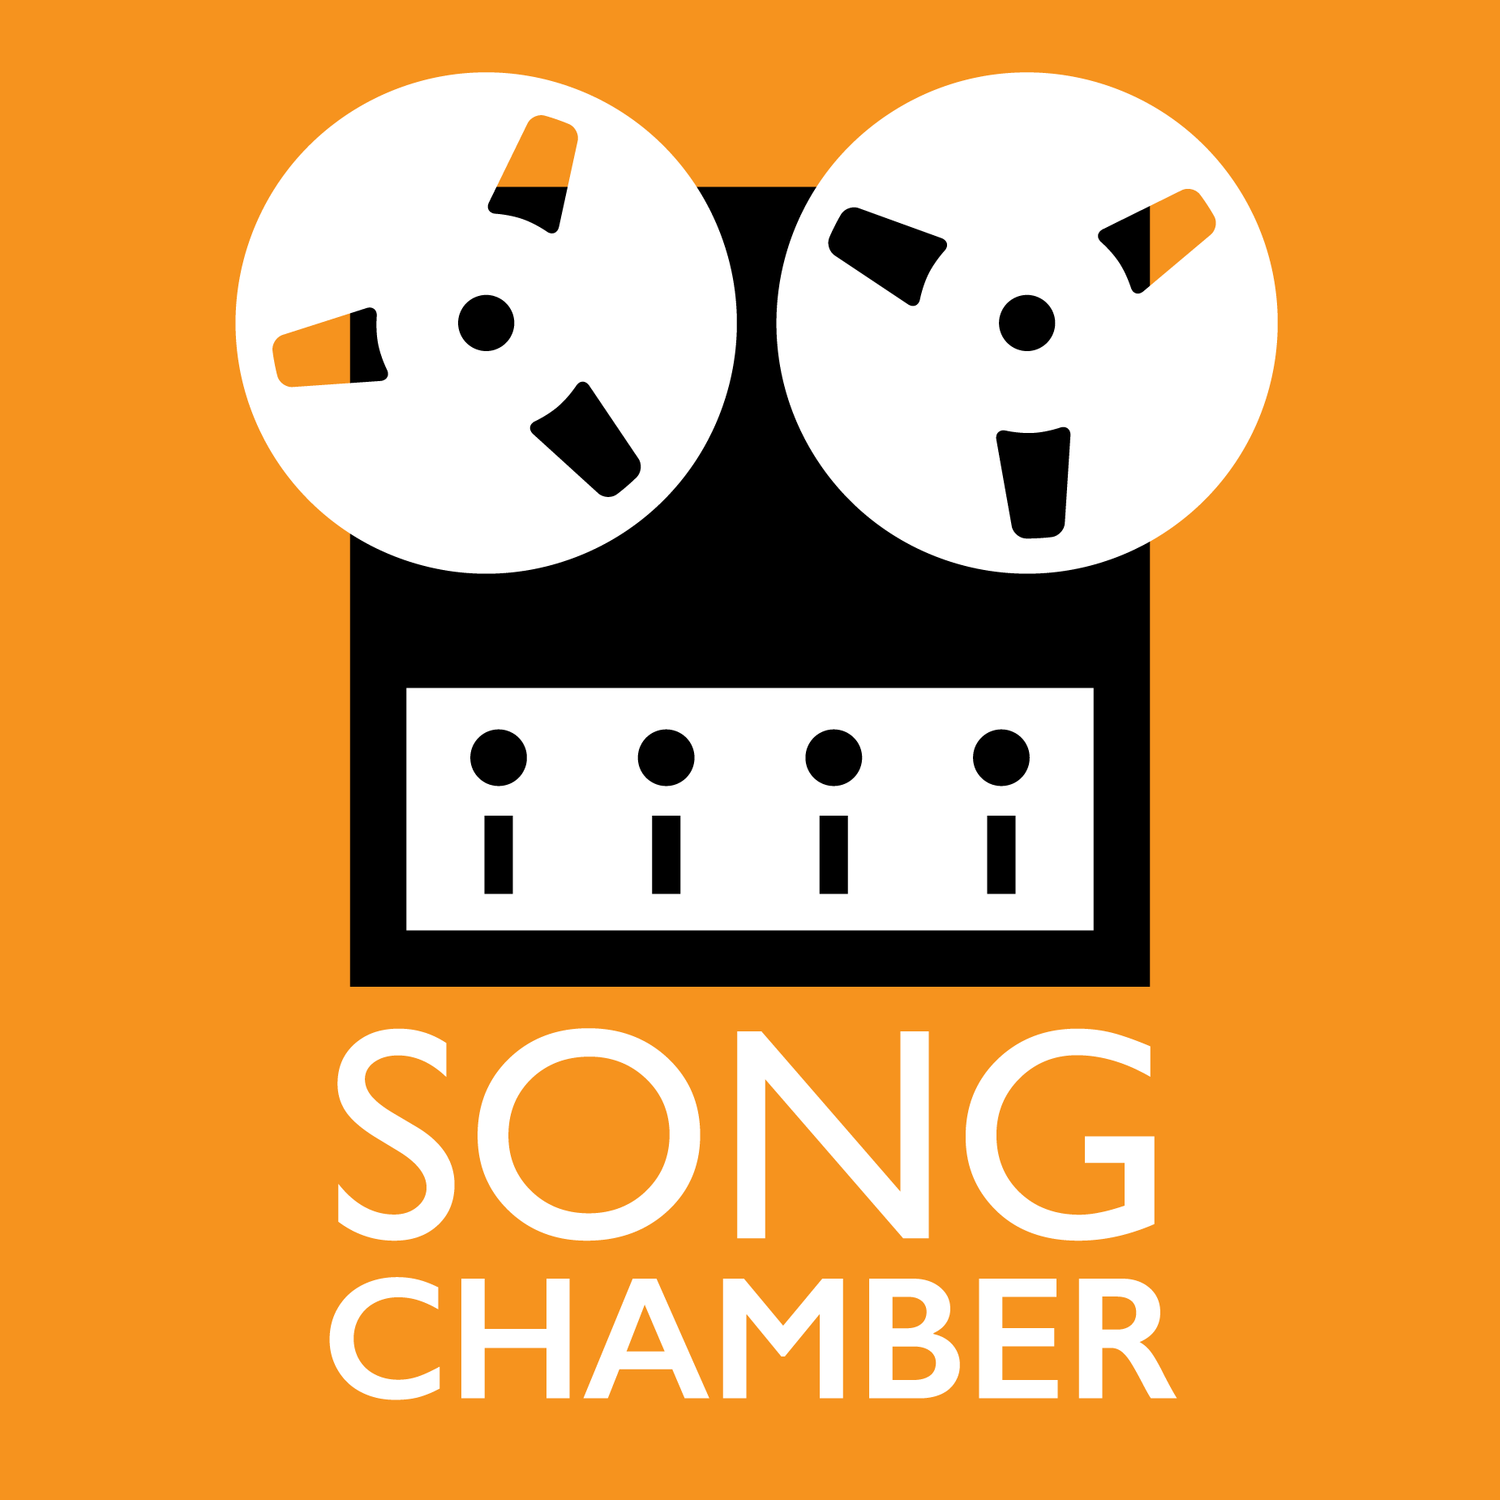 Song Chamber Podcast Cover Art / Logo